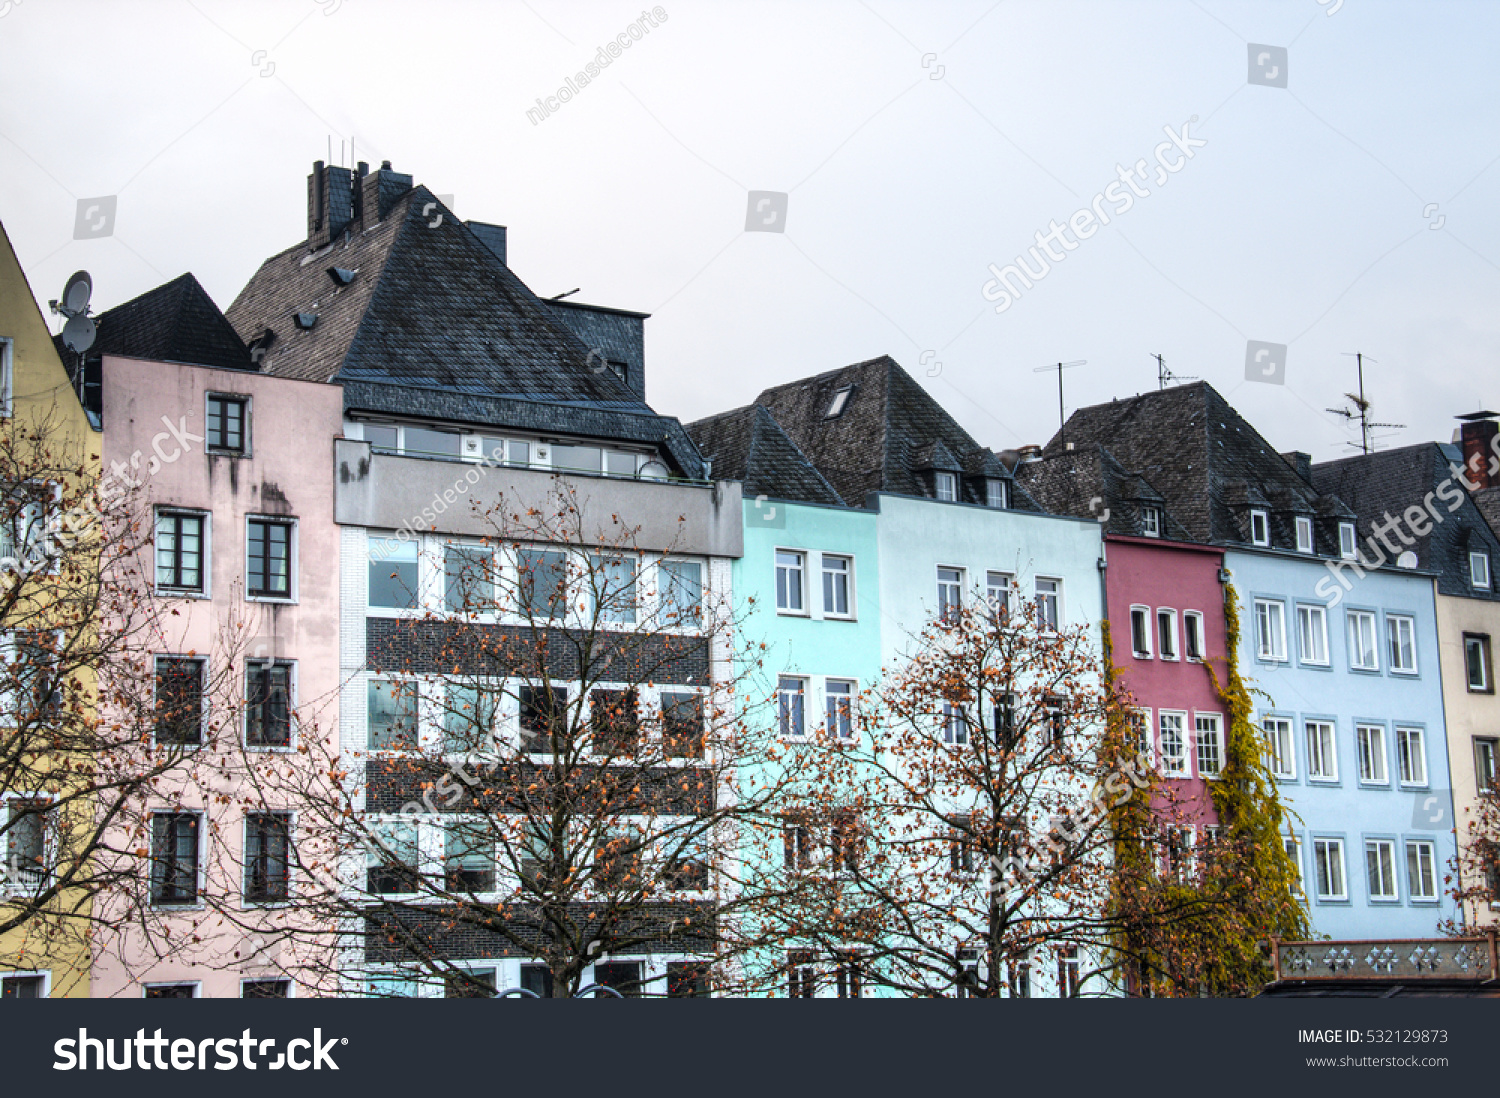 typical facades houses cologne germany stock photo 532129873 shutterstock. Black Bedroom Furniture Sets. Home Design Ideas